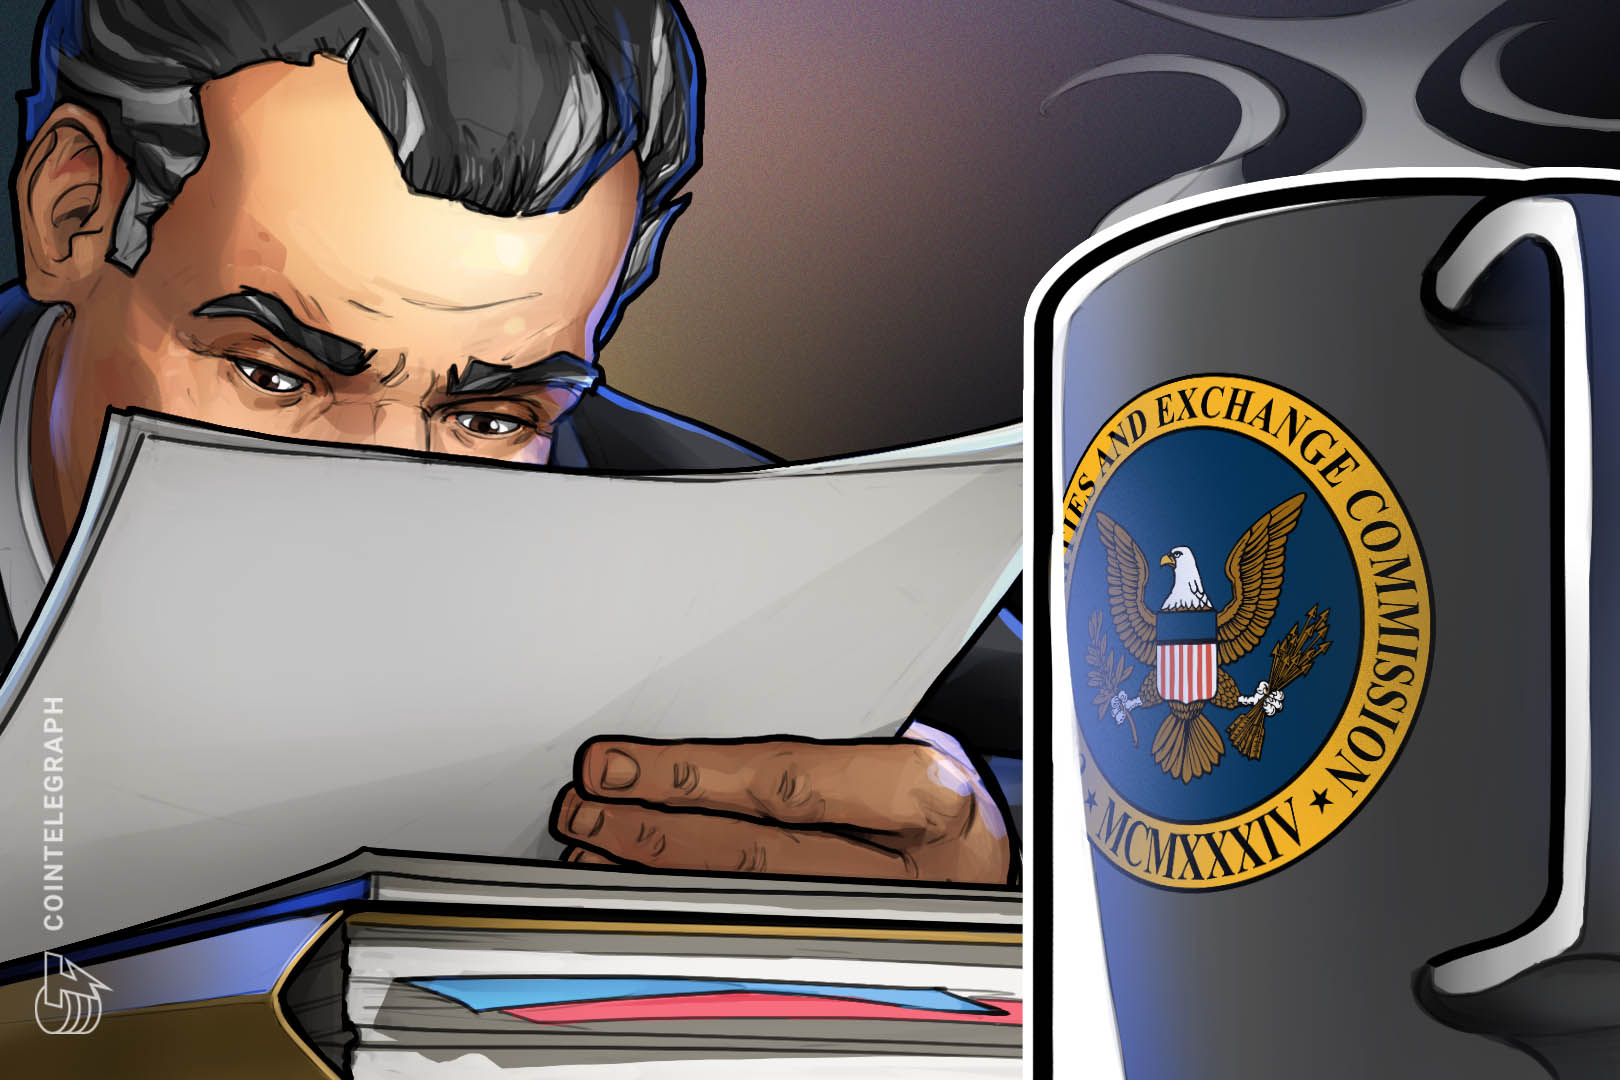 SEC Commissioner says 'safe harbor' laws would've made ICO problems worse